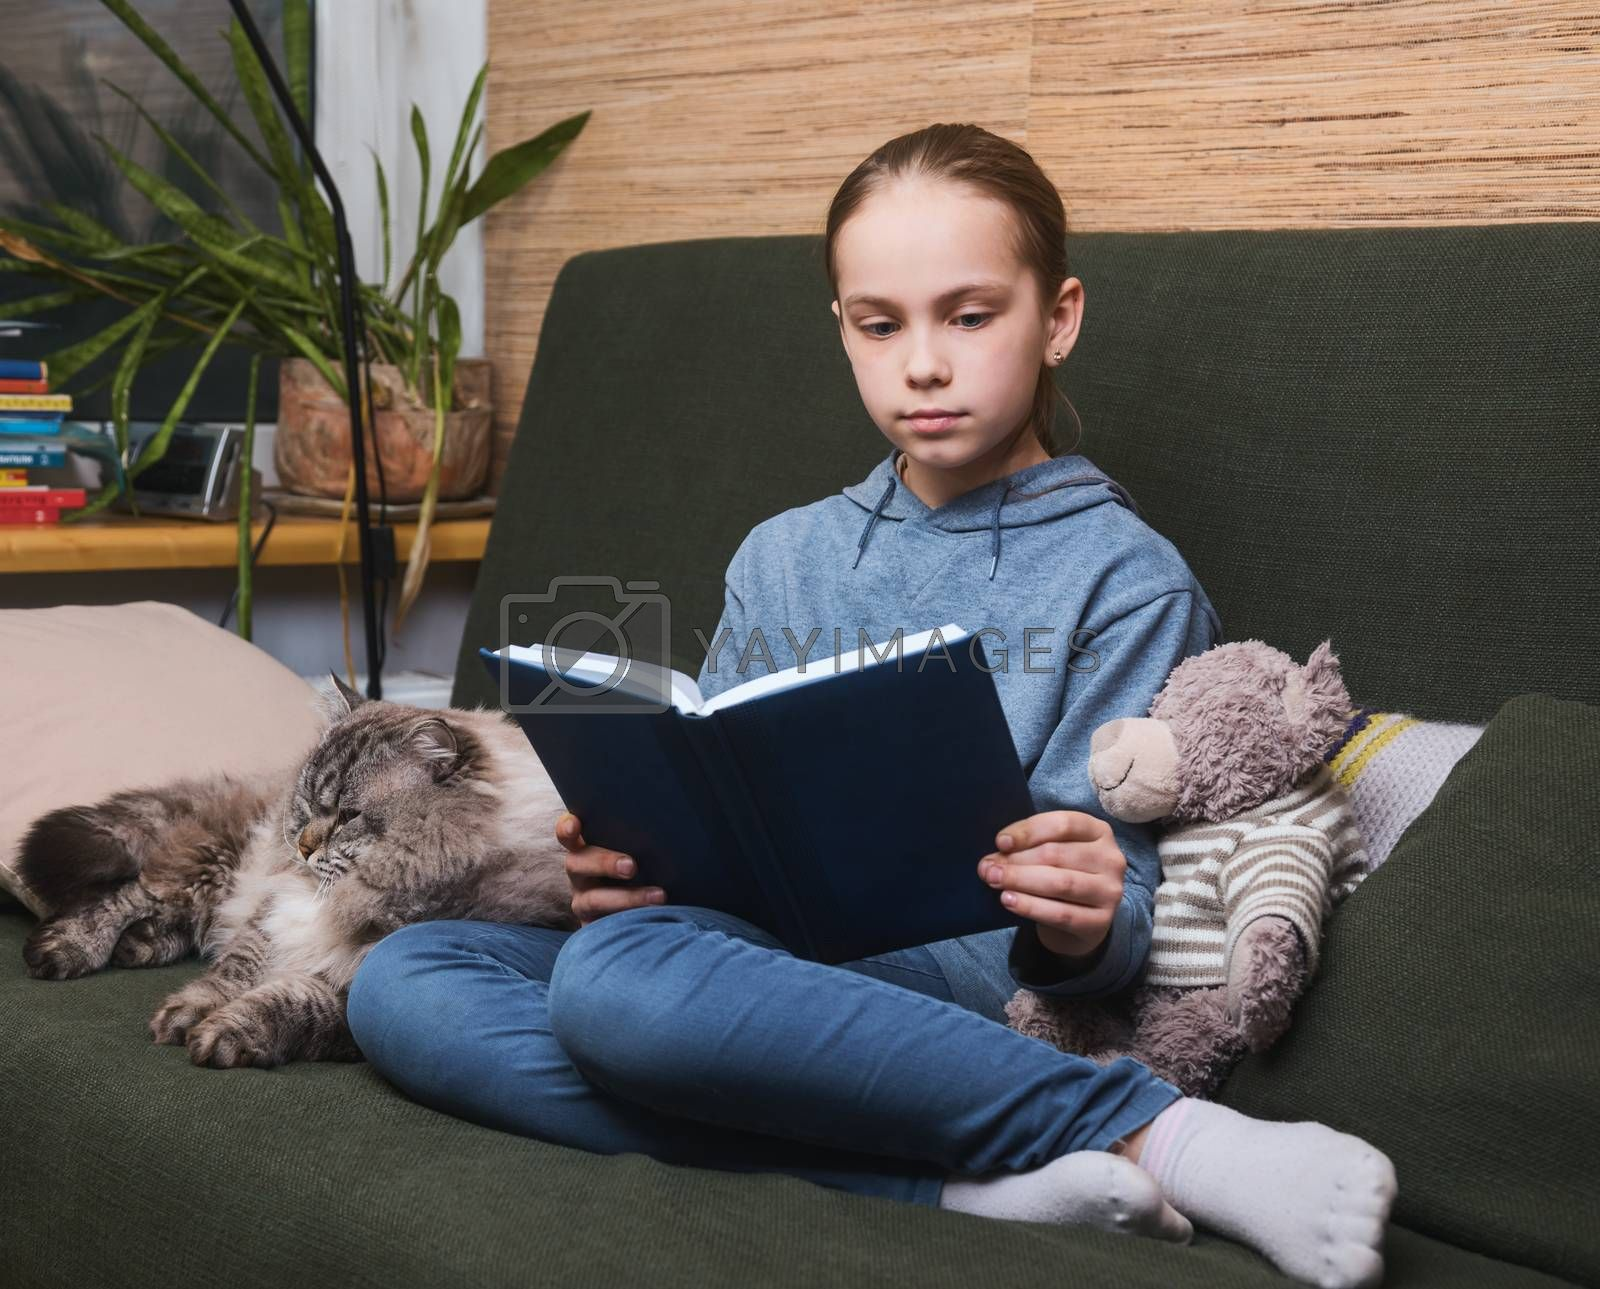 Schoolgirl reading a book sitting on a sofa with cat and toy bear. Girl is studying at home doing her homework during self-isolation. Homeschooling concept